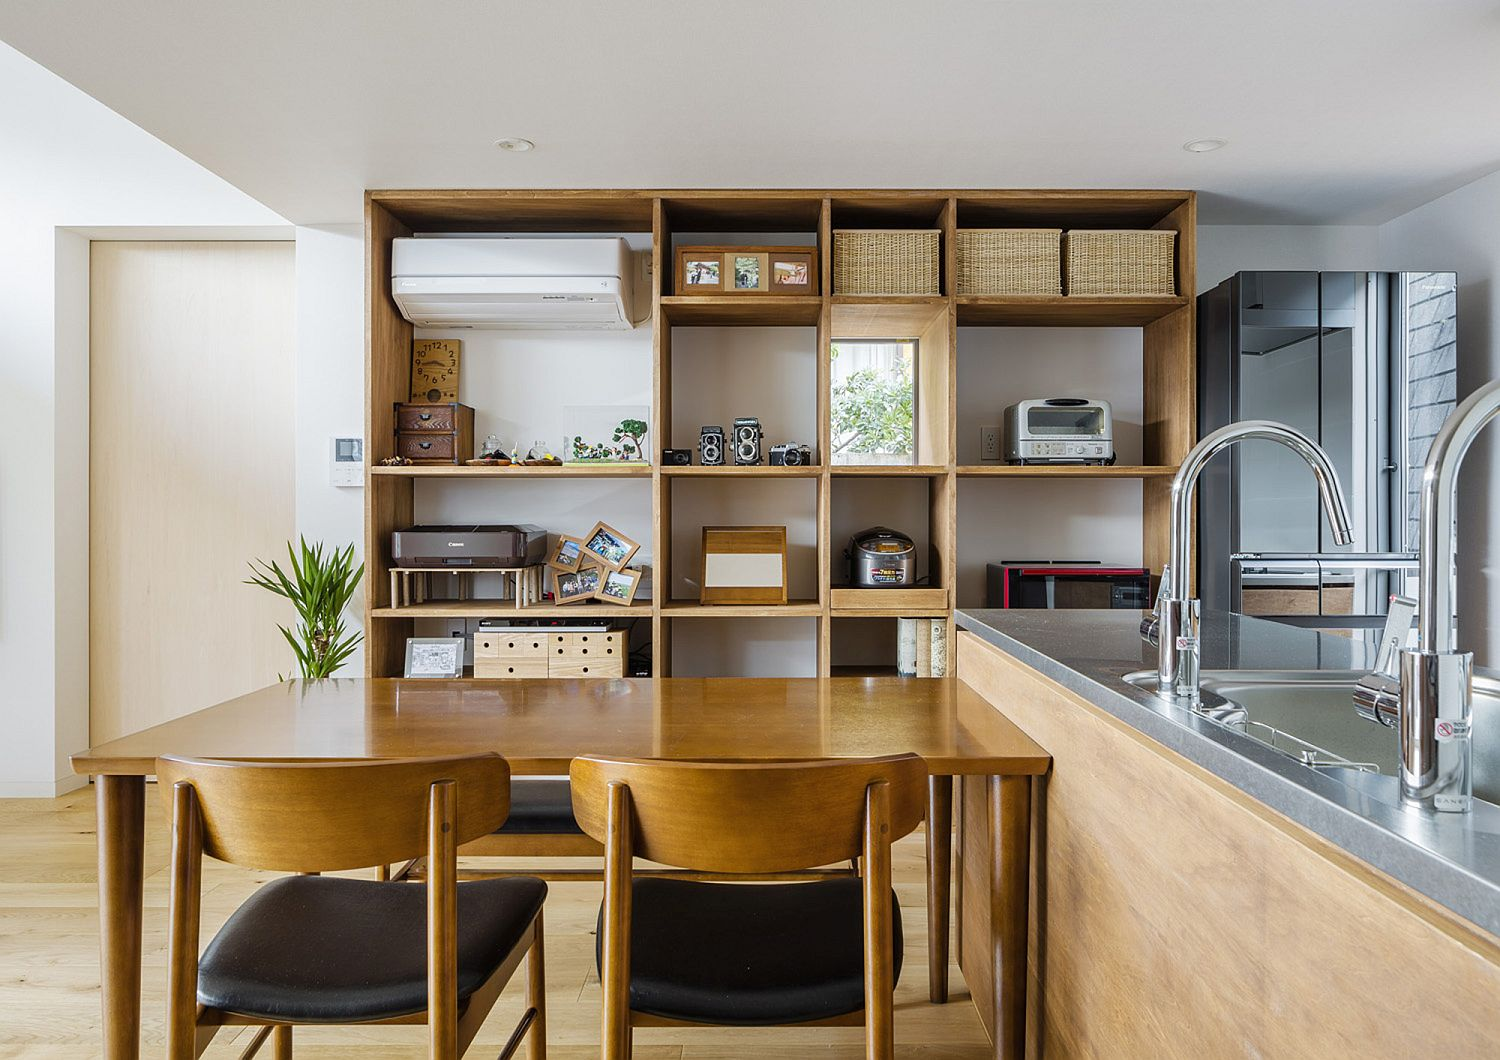 Open shelves in the backdrop of the kitchen and dining area